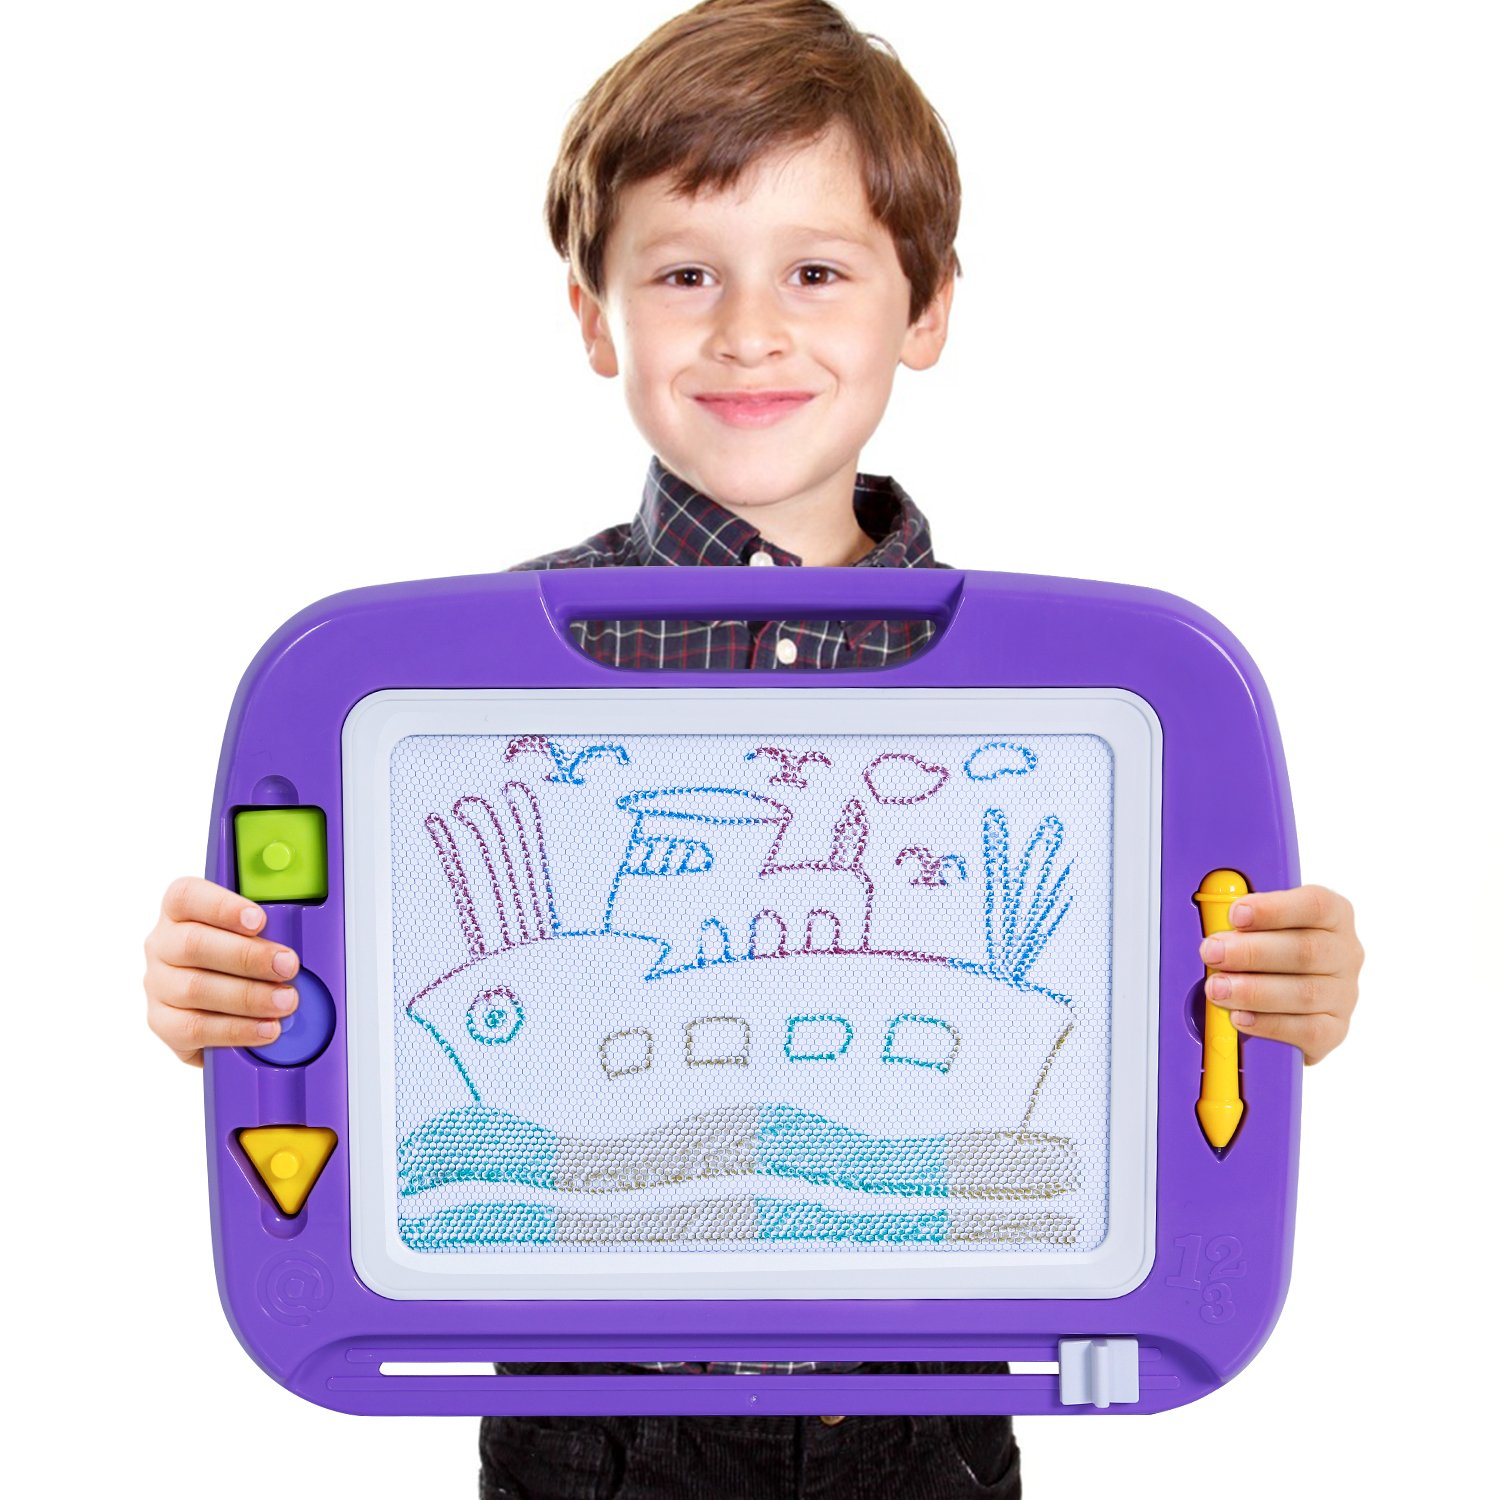 "TONOR Magnetic Drawing Board Toy, 13X17"" Magna Doodle Sketch Erasable Pad for Writing Kids Toddler Boy Girl Painting Learning Birthday Gift Present, Extra Large"